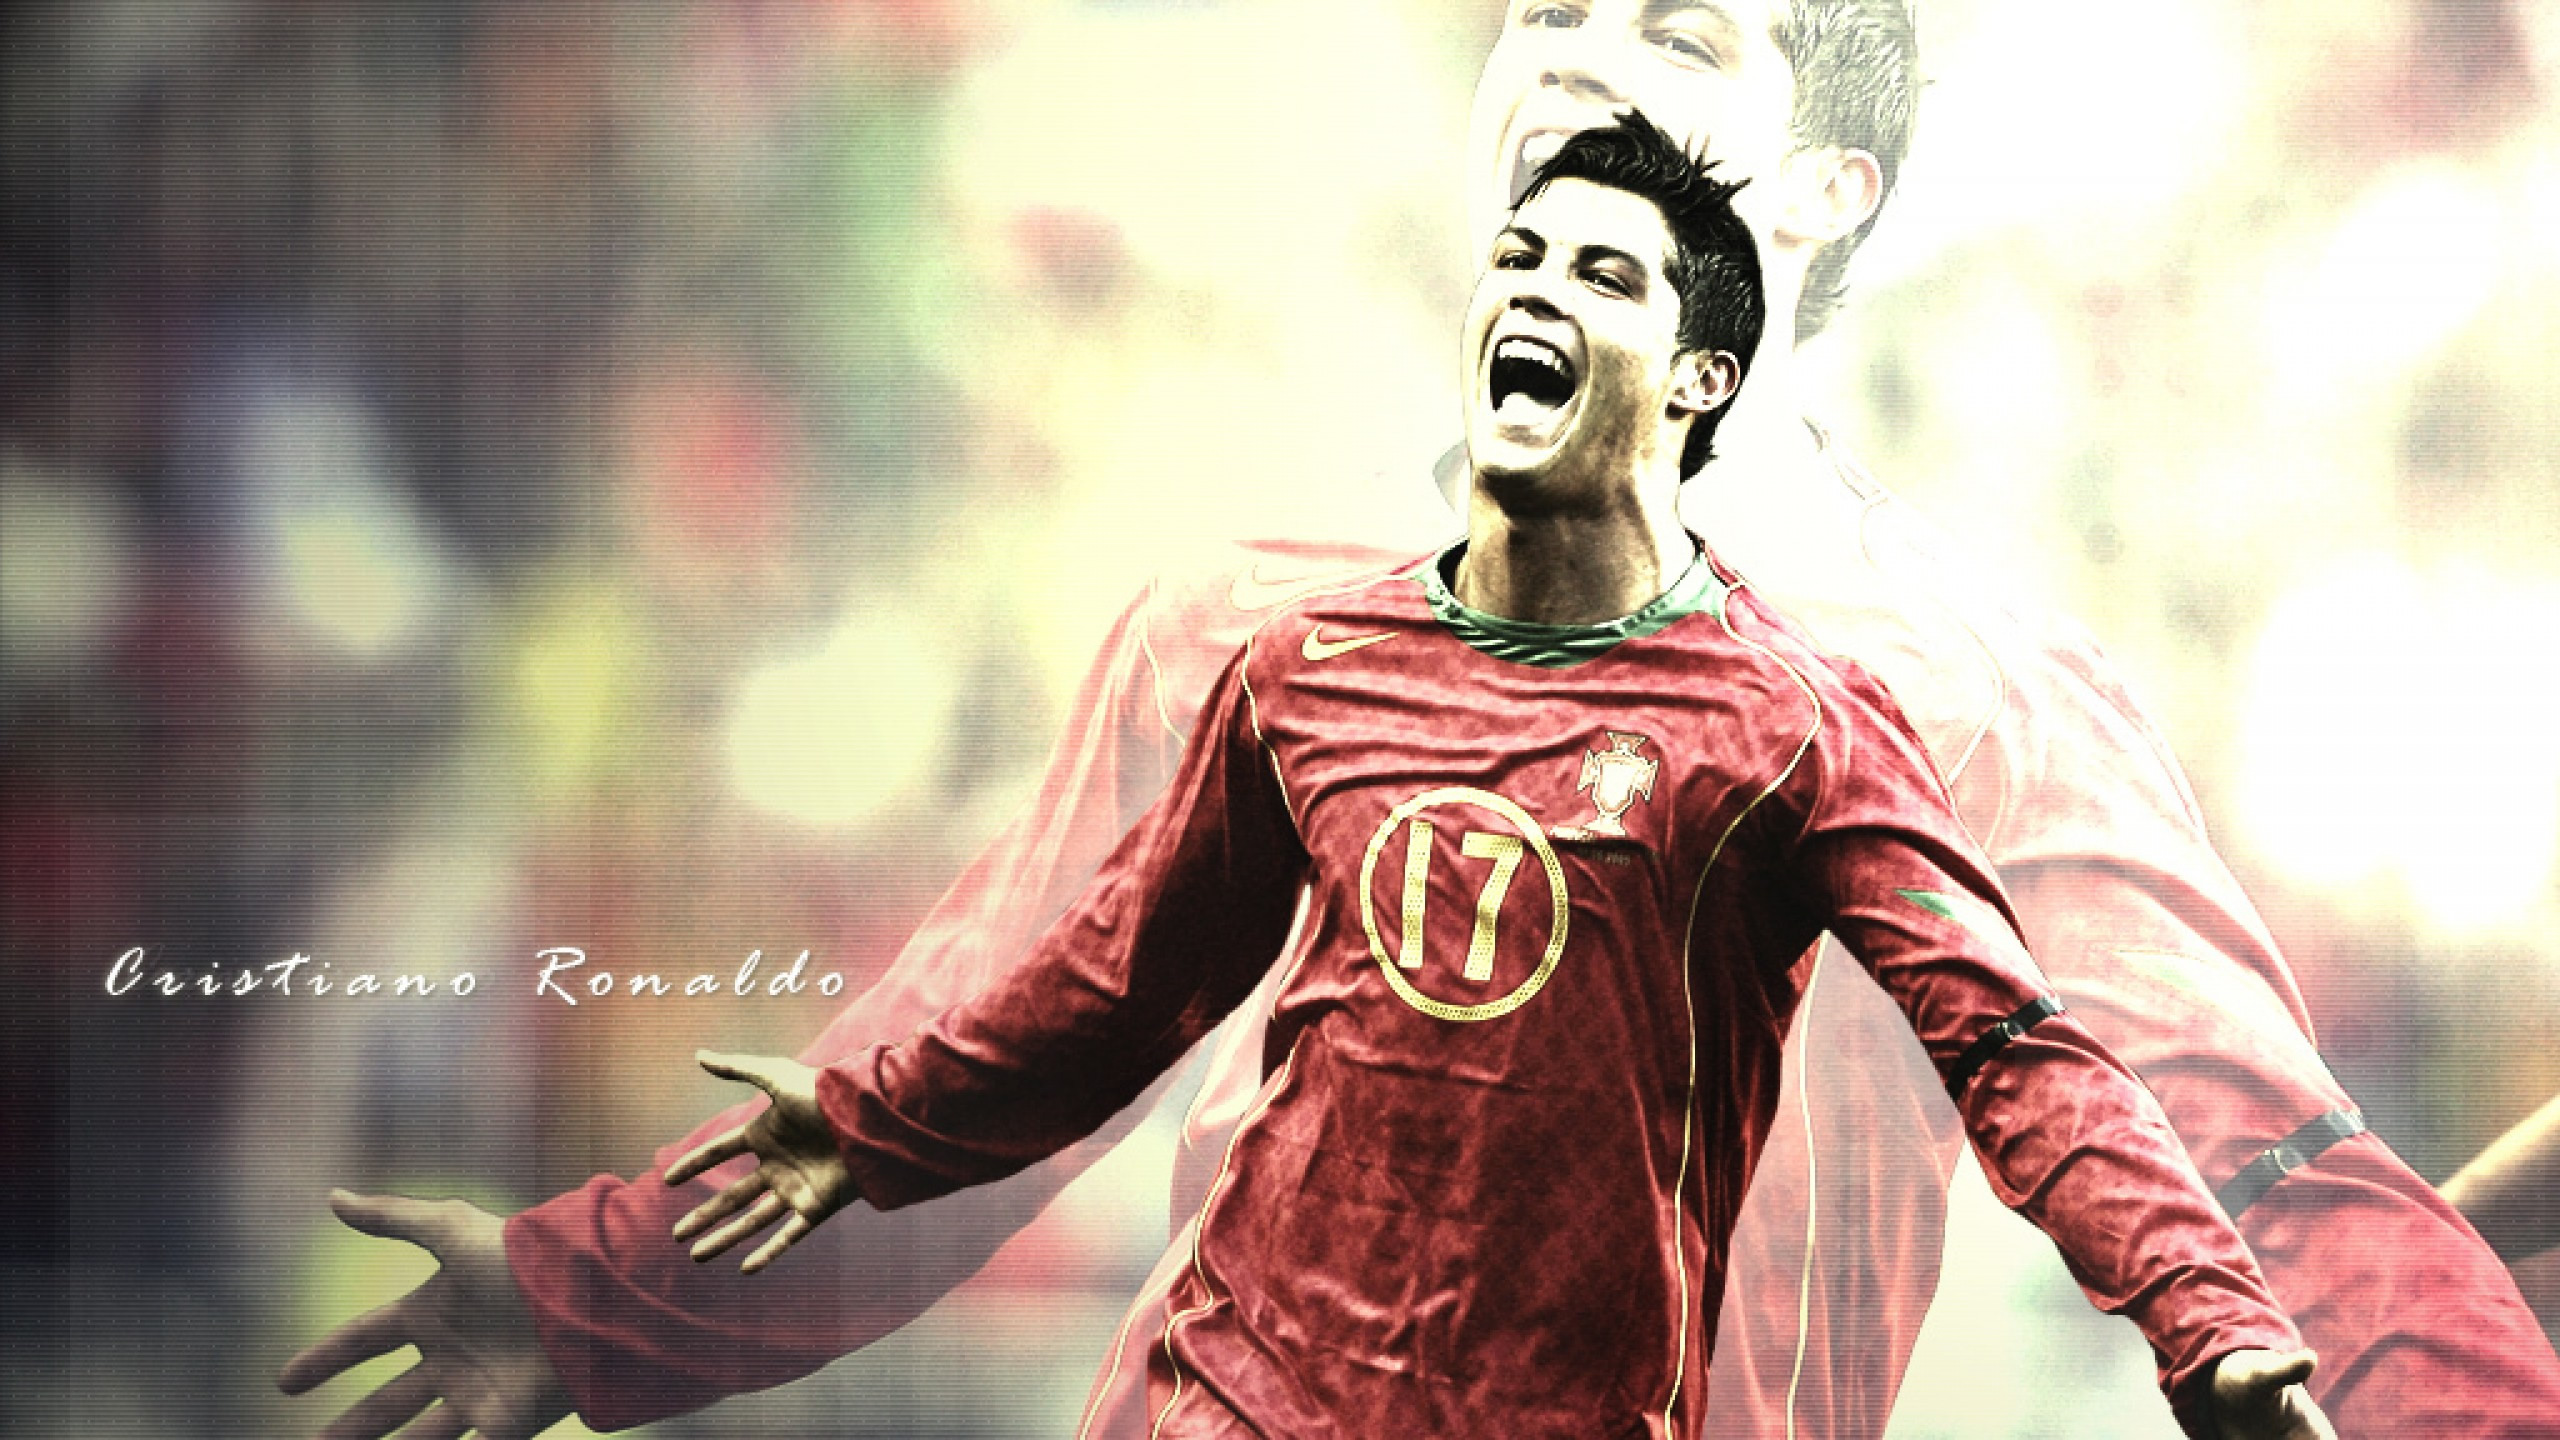 Cristiano Ronaldo running wallpaper (3)